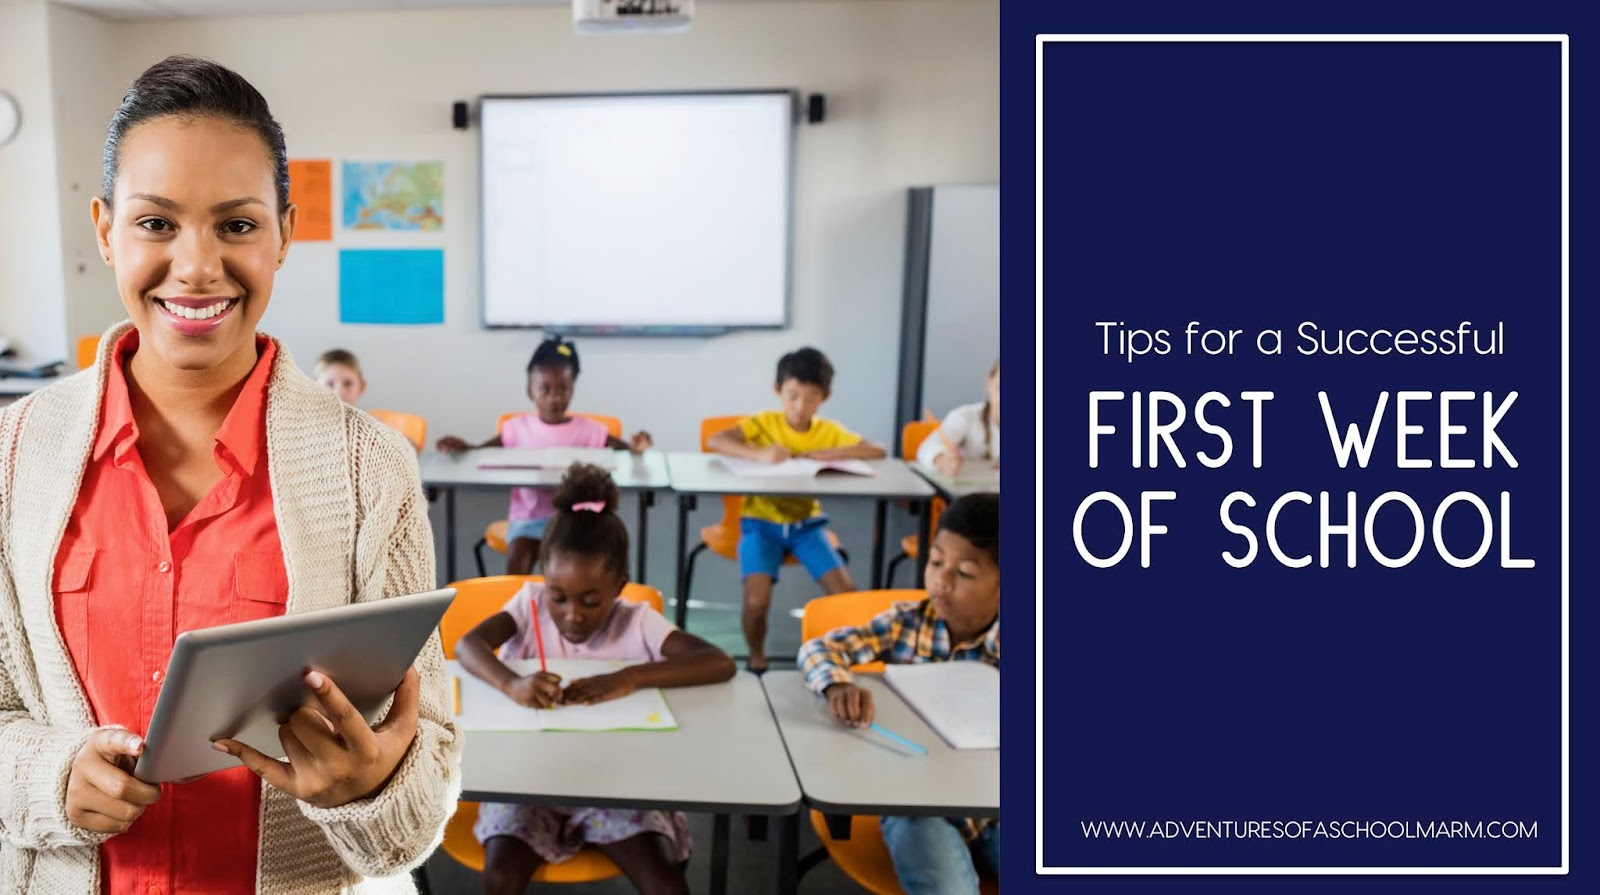 Check out these tips on what is most important to establish with your students in the first week!